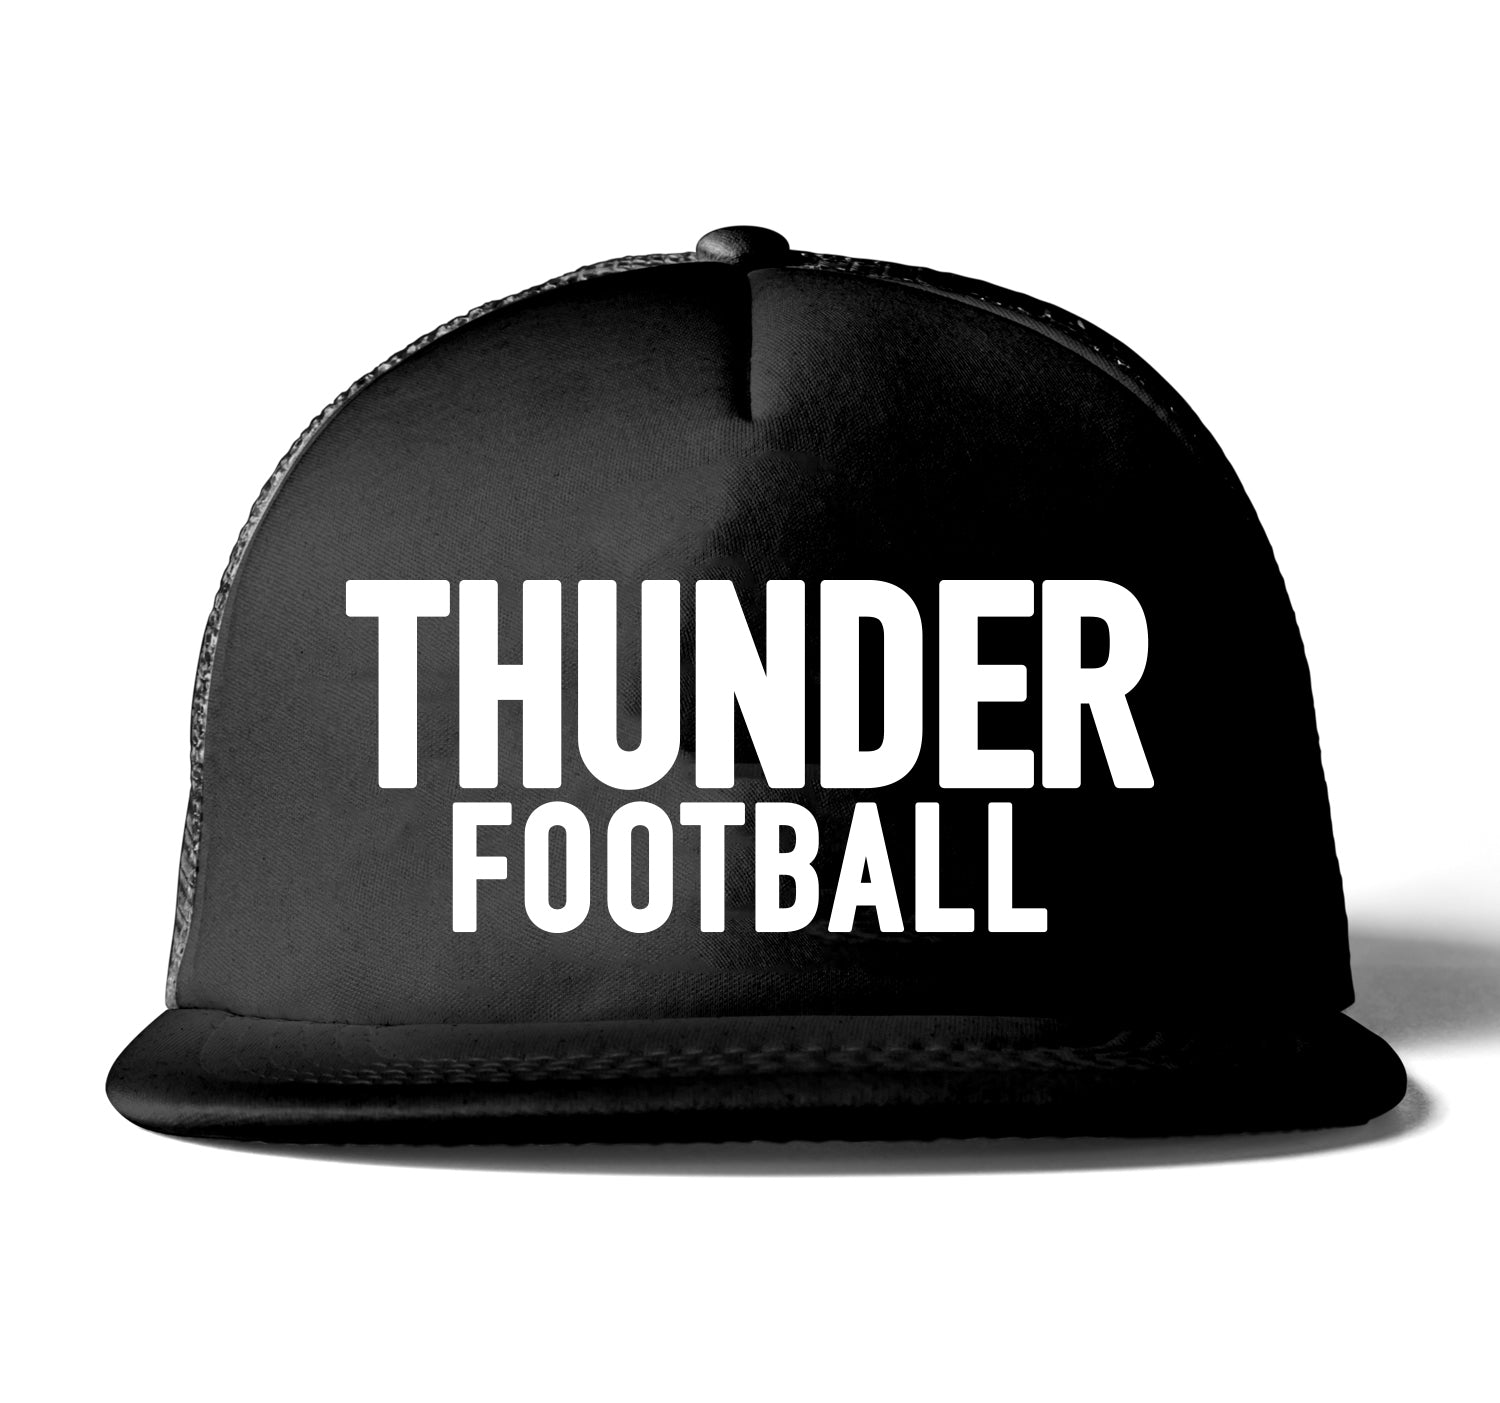 Thunder Football Trucker Hat